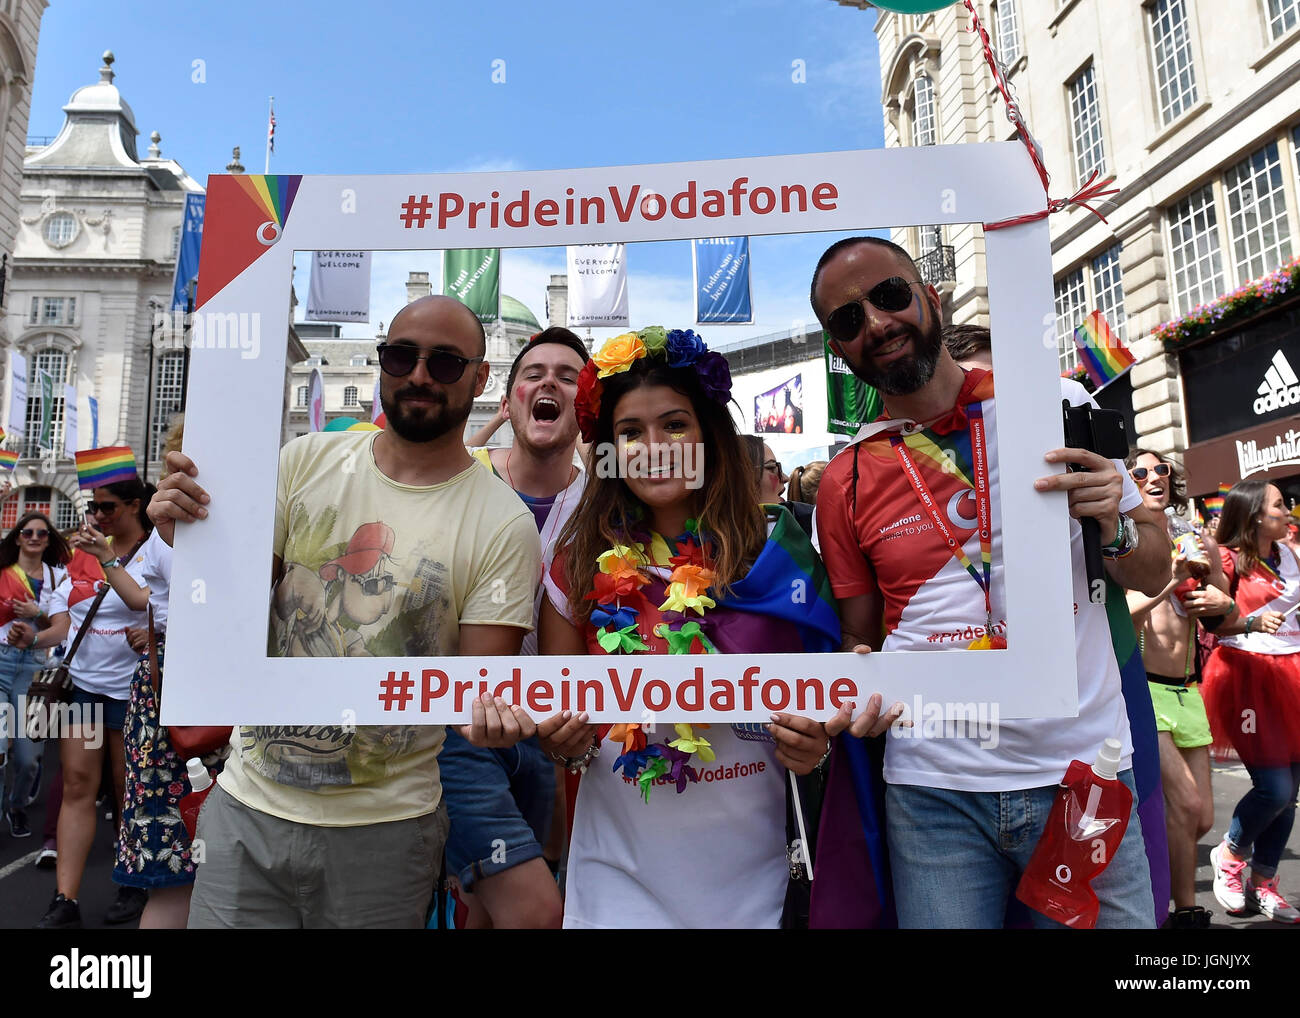 London, UK. 08th July, 2017. The workers from Vodafone posed photo during Pride In London on Saturday. Photo : Taka - Stock Image